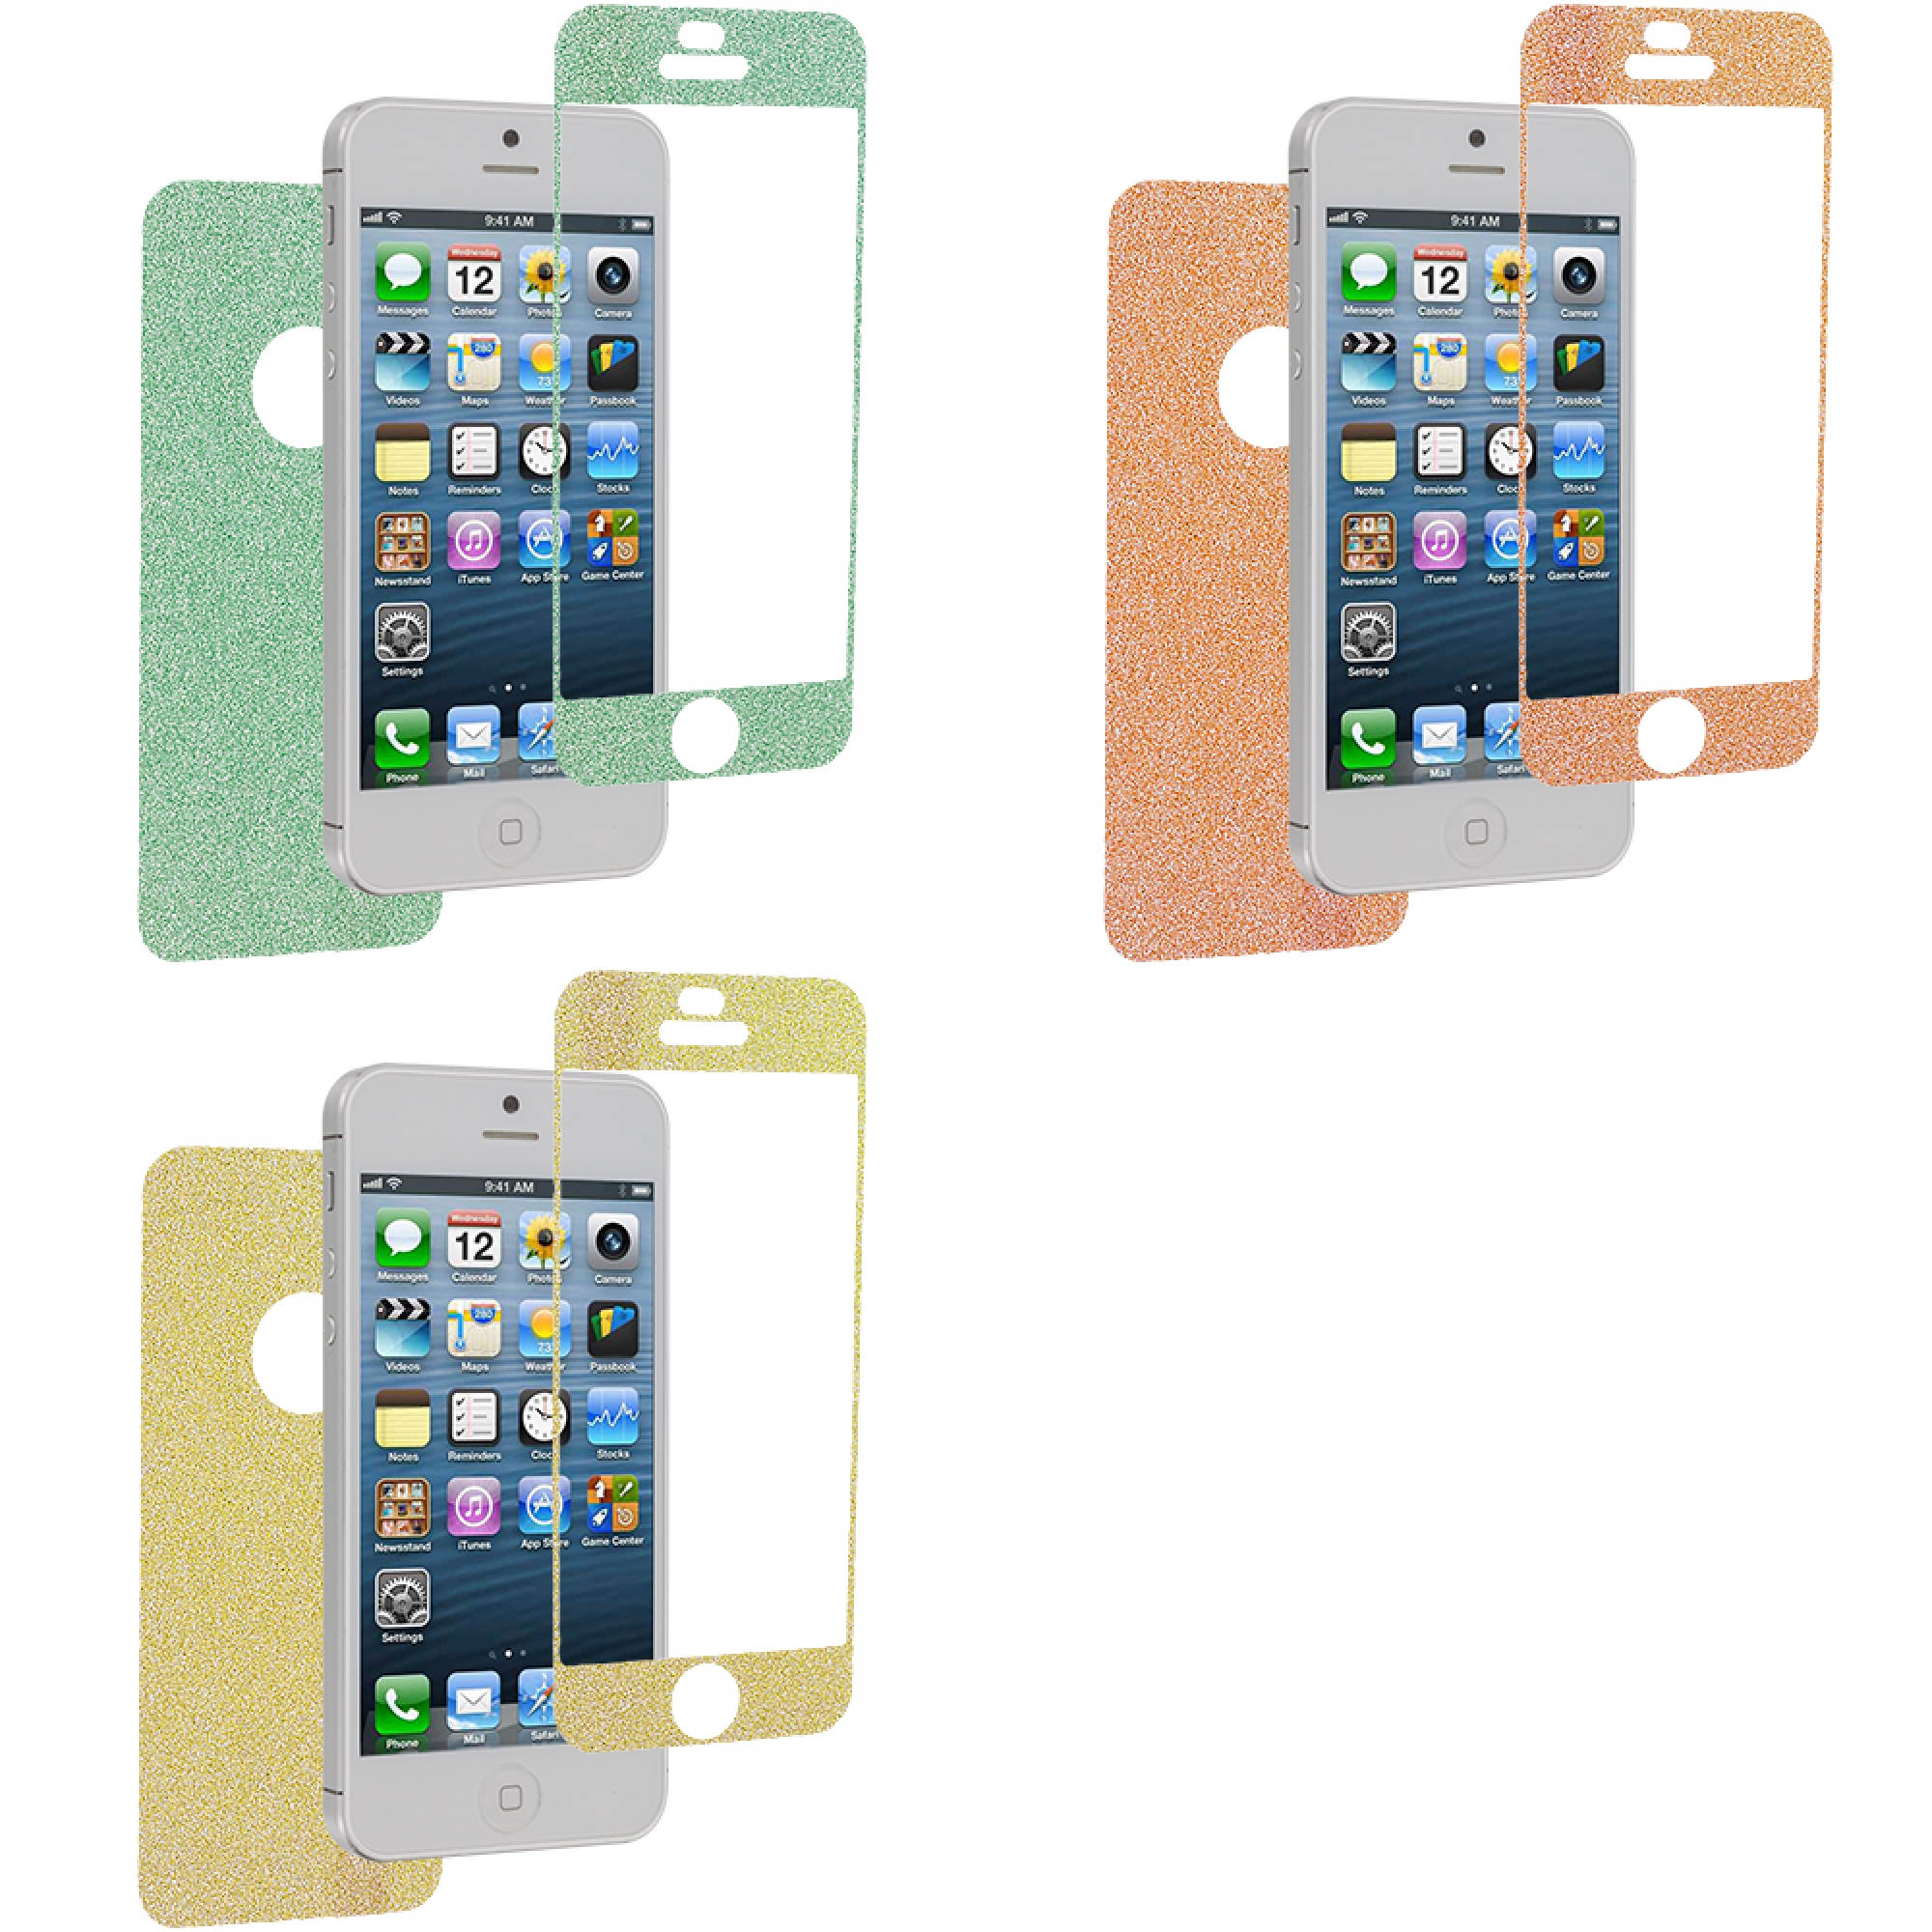 Apple iPhone 5 / 5S Combo Pack : Neon Green Glittter LCD Screen Protector